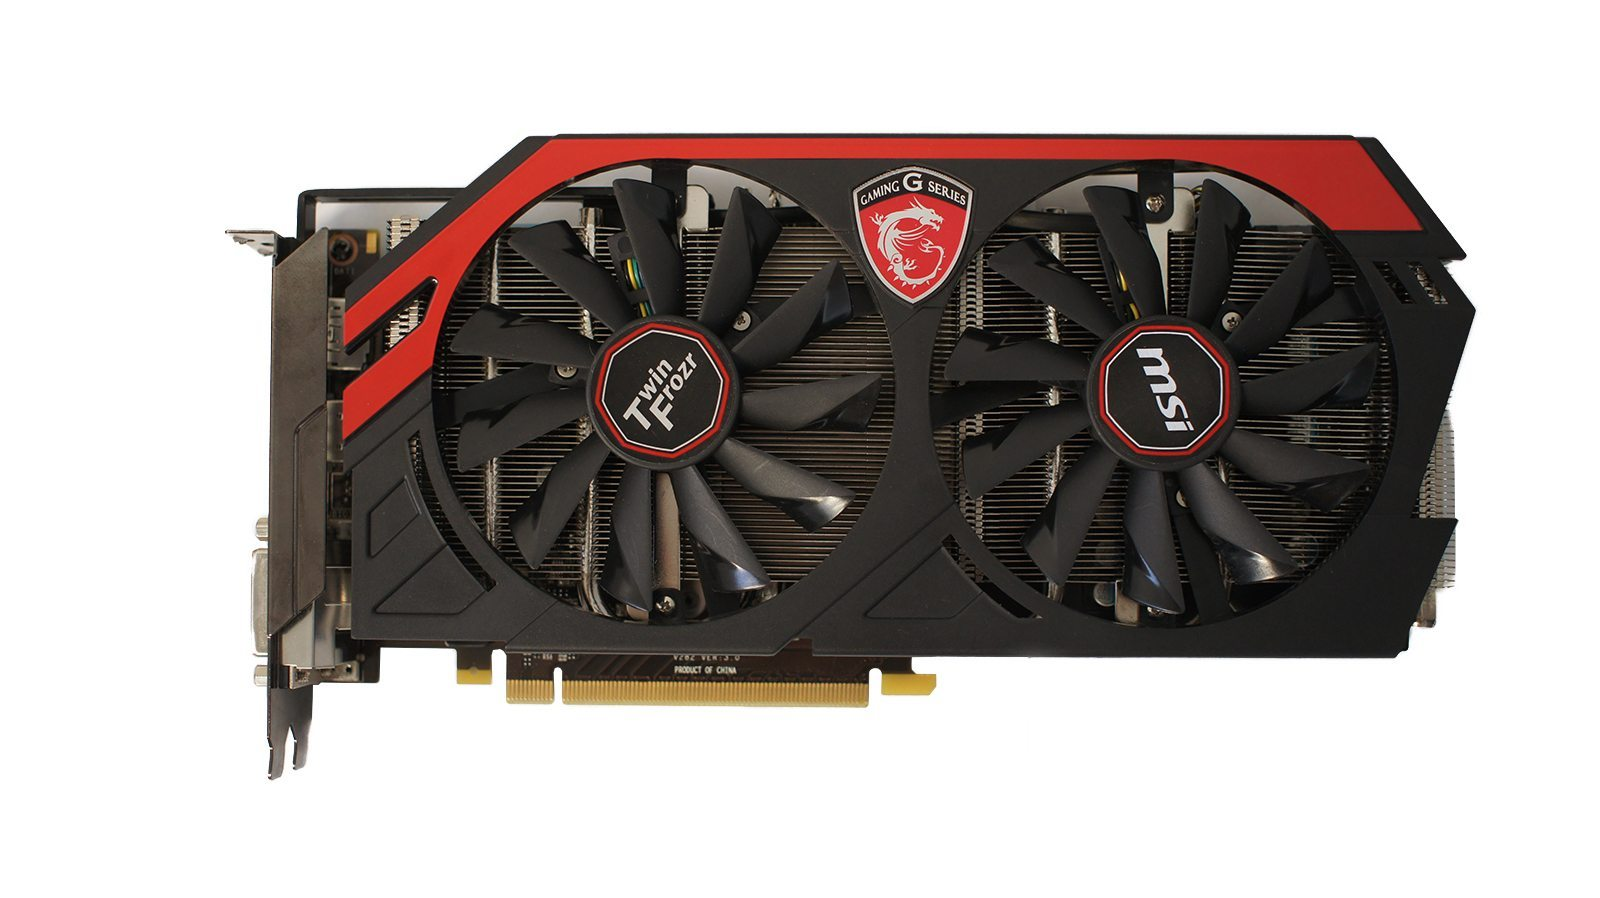 MSI GeForce GTX 770